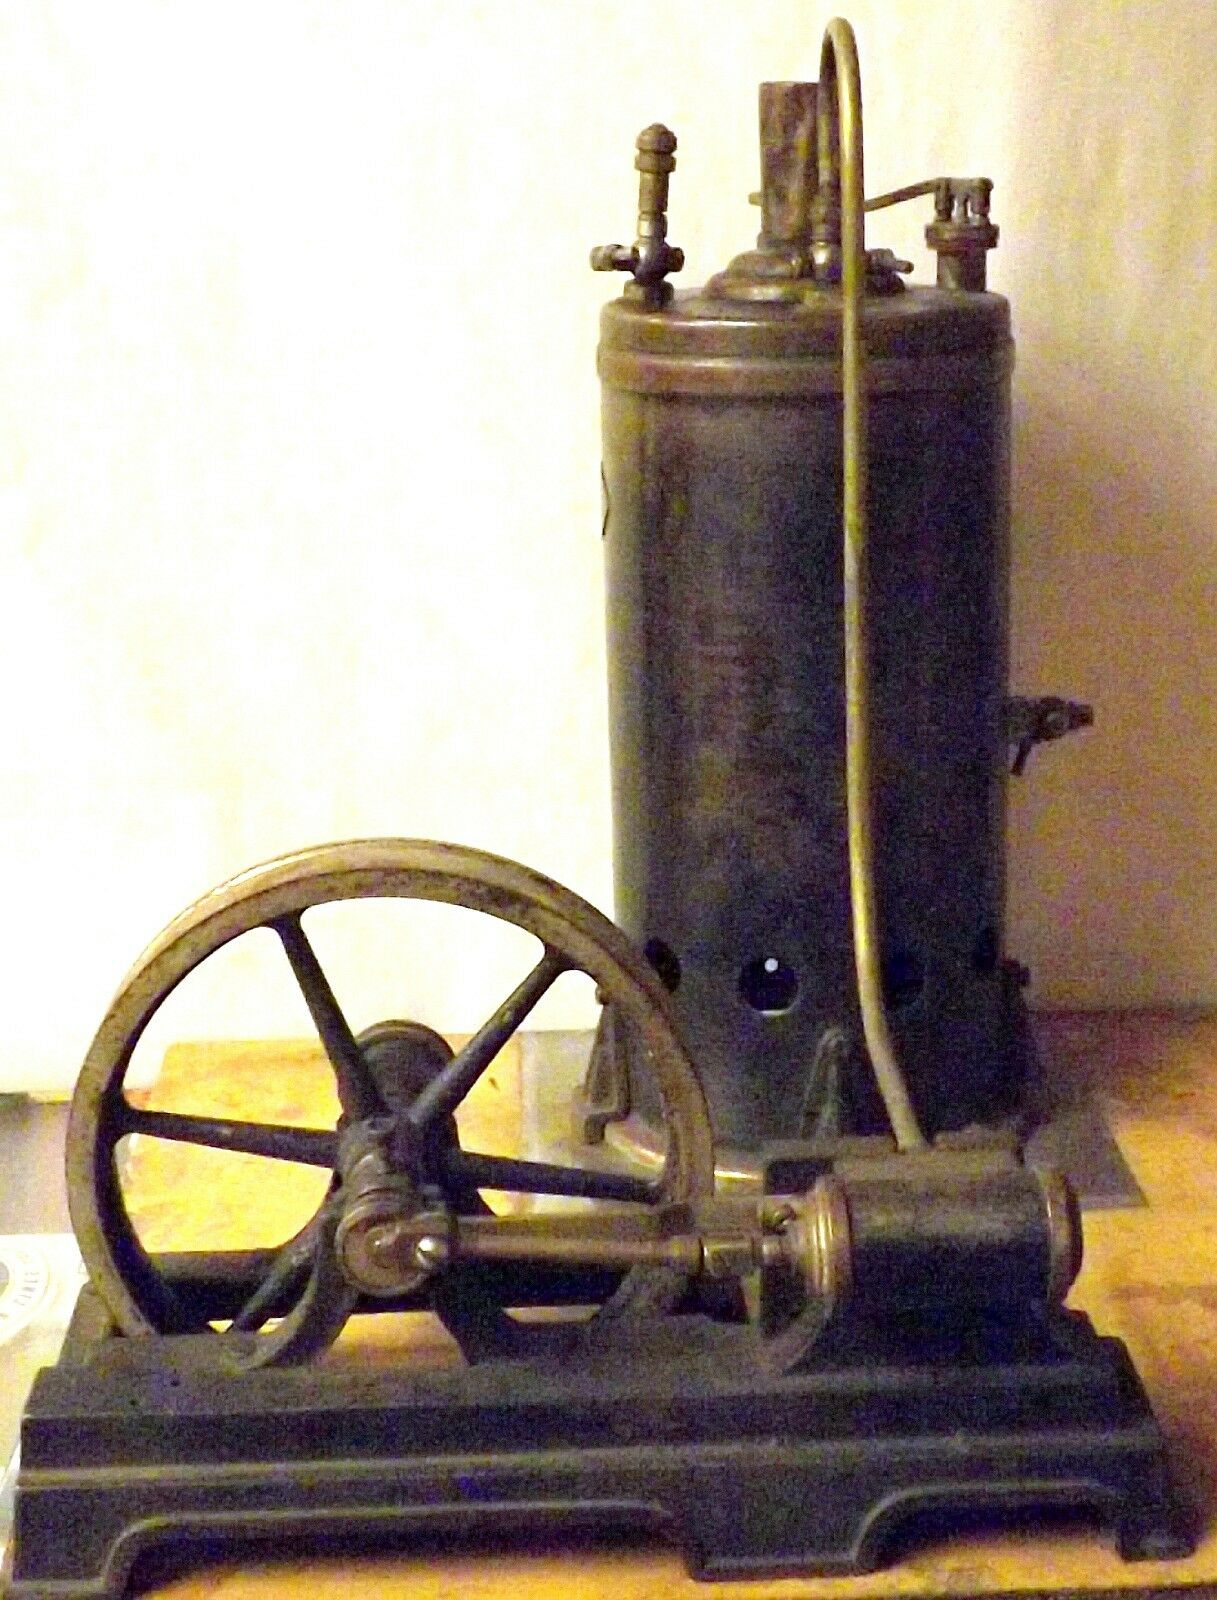 EARLY 20TH CENTURY MARKLIN WURTTEMBERG NUMBER 10 greenICAL STEAM ENGINE TOY